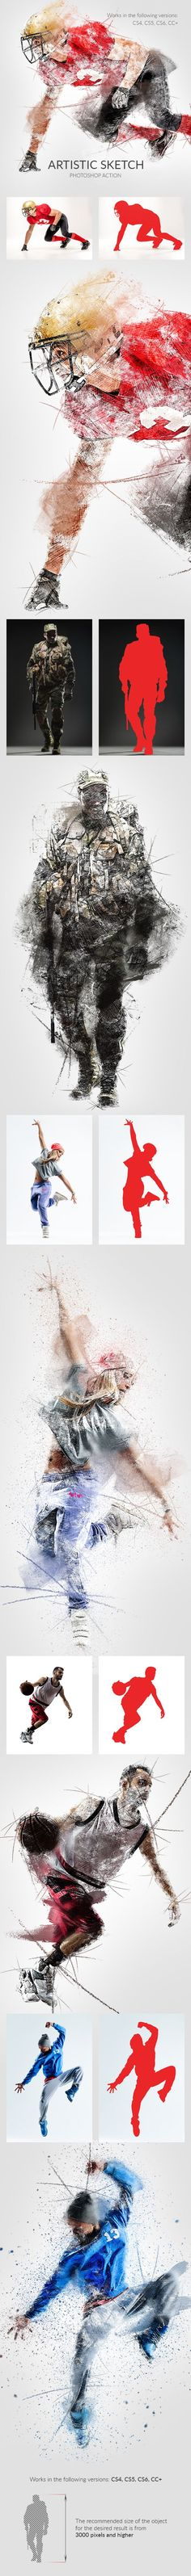 Artistic Sketch Photoshop Action - Photo Effects Actions